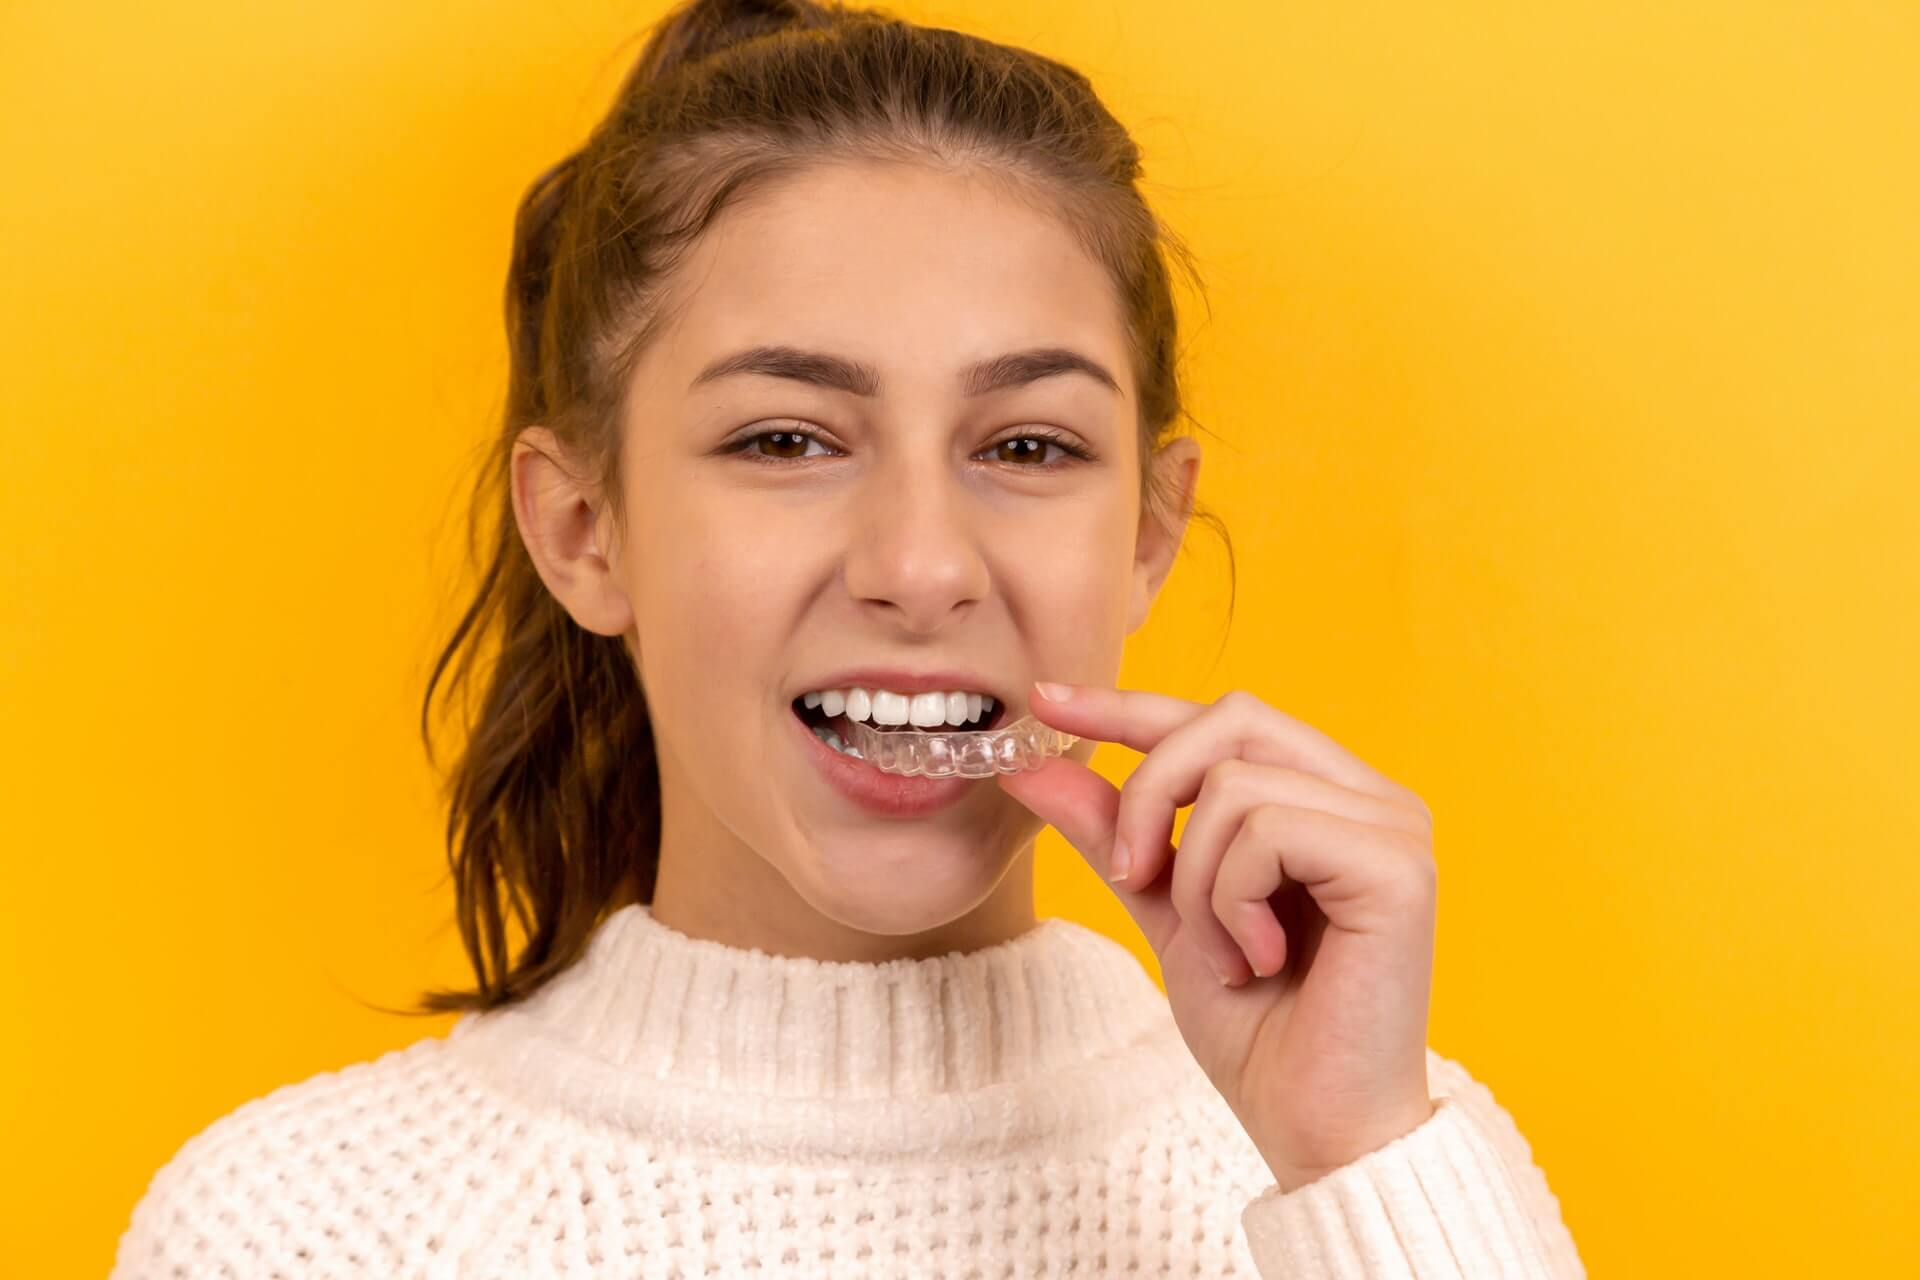 Who can benefit from Clear Correct Invisible Braces?